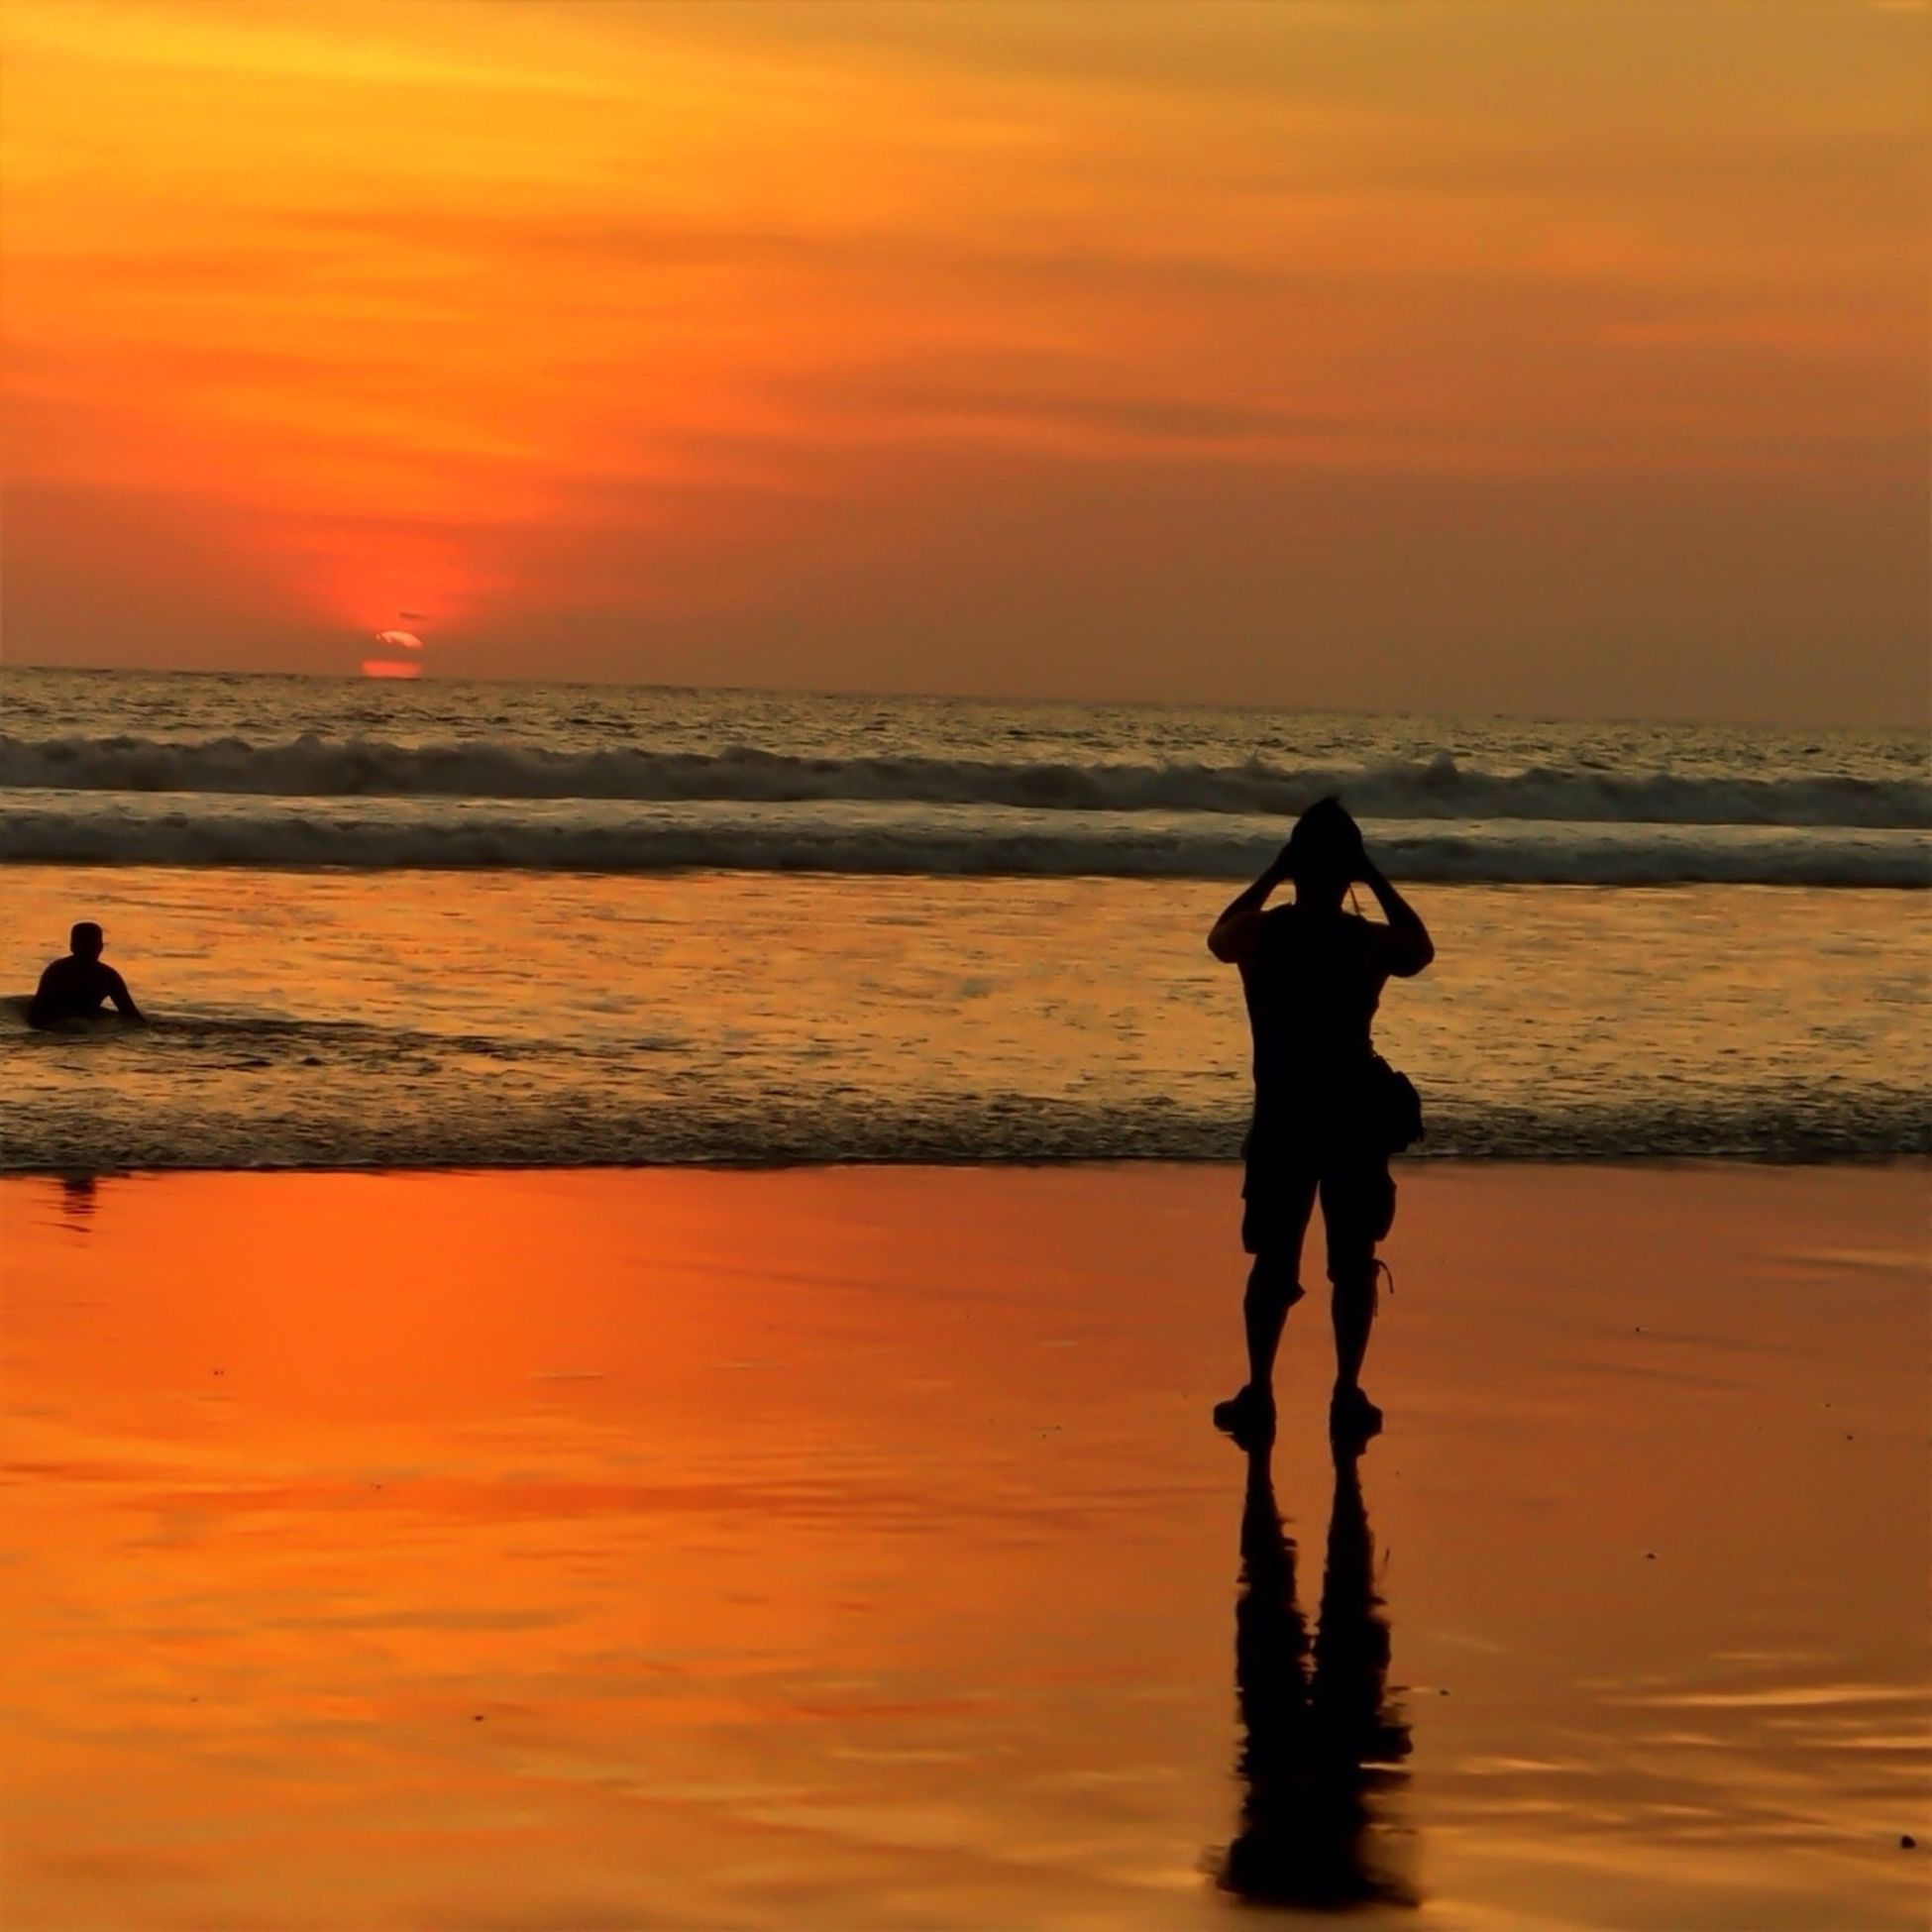 sunset, sea, horizon over water, silhouette, water, orange color, beach, sky, scenics, leisure activity, lifestyles, beauty in nature, shore, standing, tranquil scene, tranquility, idyllic, men, vacations